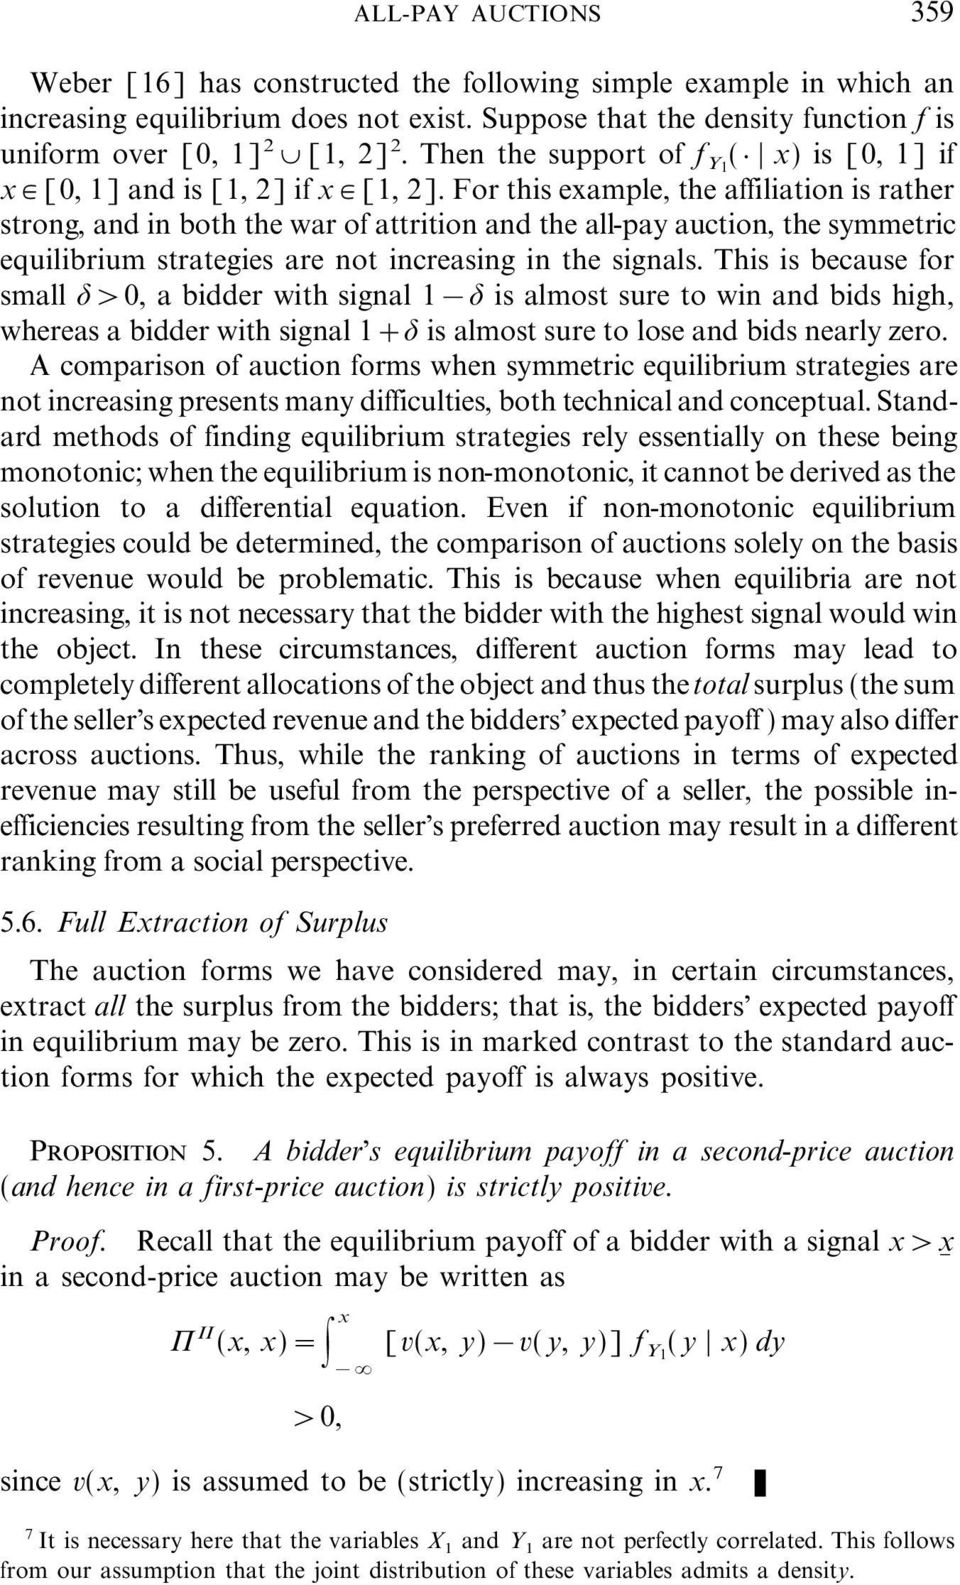 For this example, the affiliation is rather strong, and in both the war of attrition and the all-pay auction, the symmetric equilibrium strategies are not increasing in the signals.